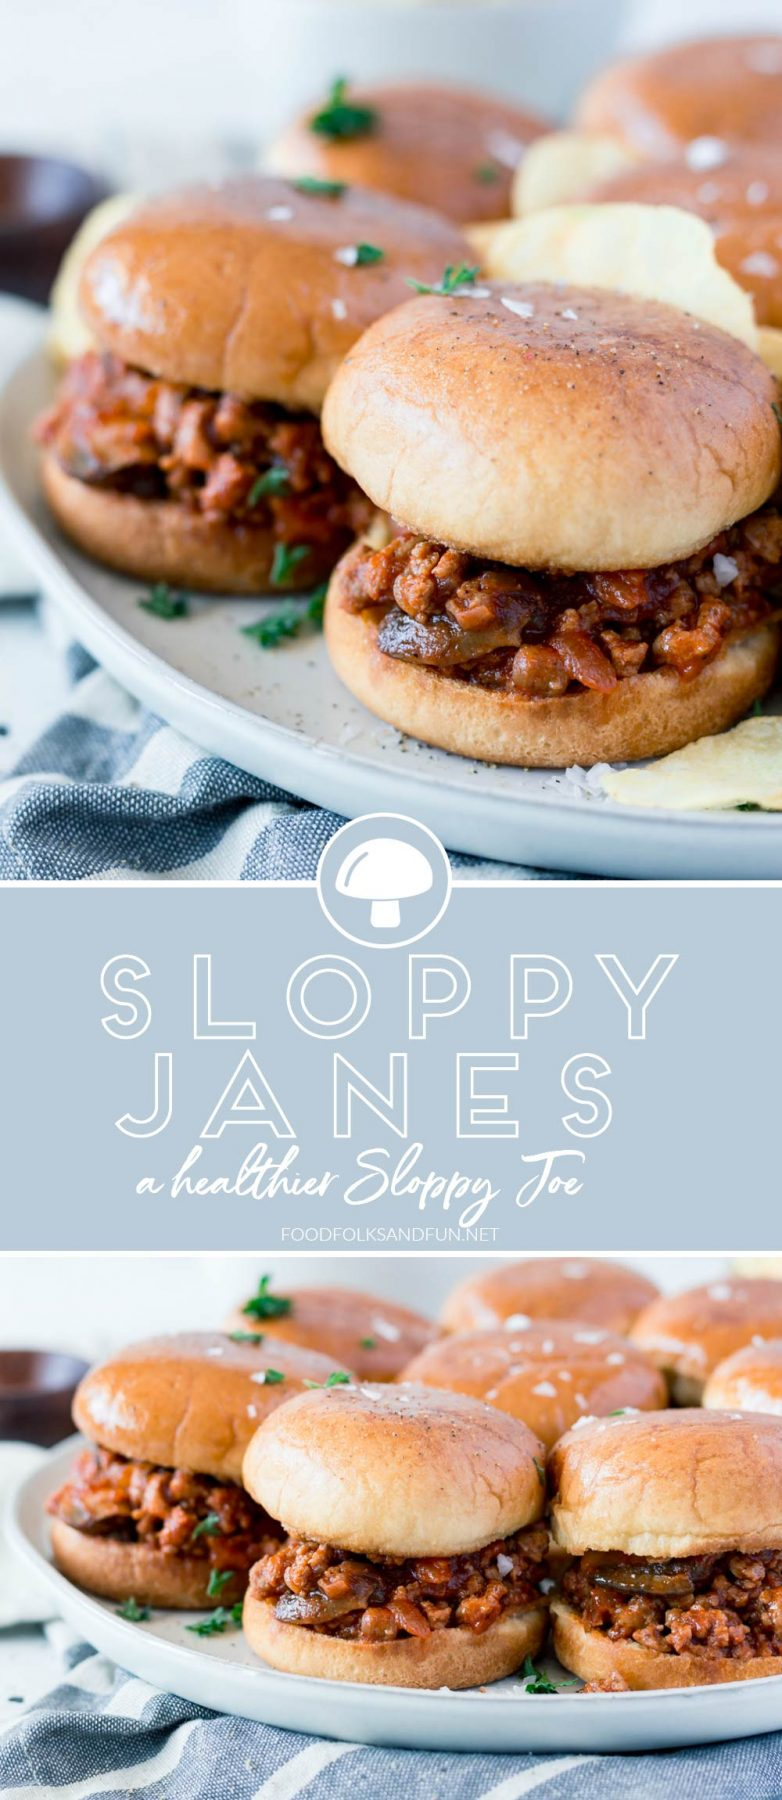 Let me introduce you to Sloppy Joe's leaner, healthier & sassier sister, Sloppy Jane. This recipe is quick and easy to make and it tastes fantastic! This Sloppy Jane recipe is low on fat and high on flavor with loads of veggies and lean ground turkey. via @foodfolksandfun